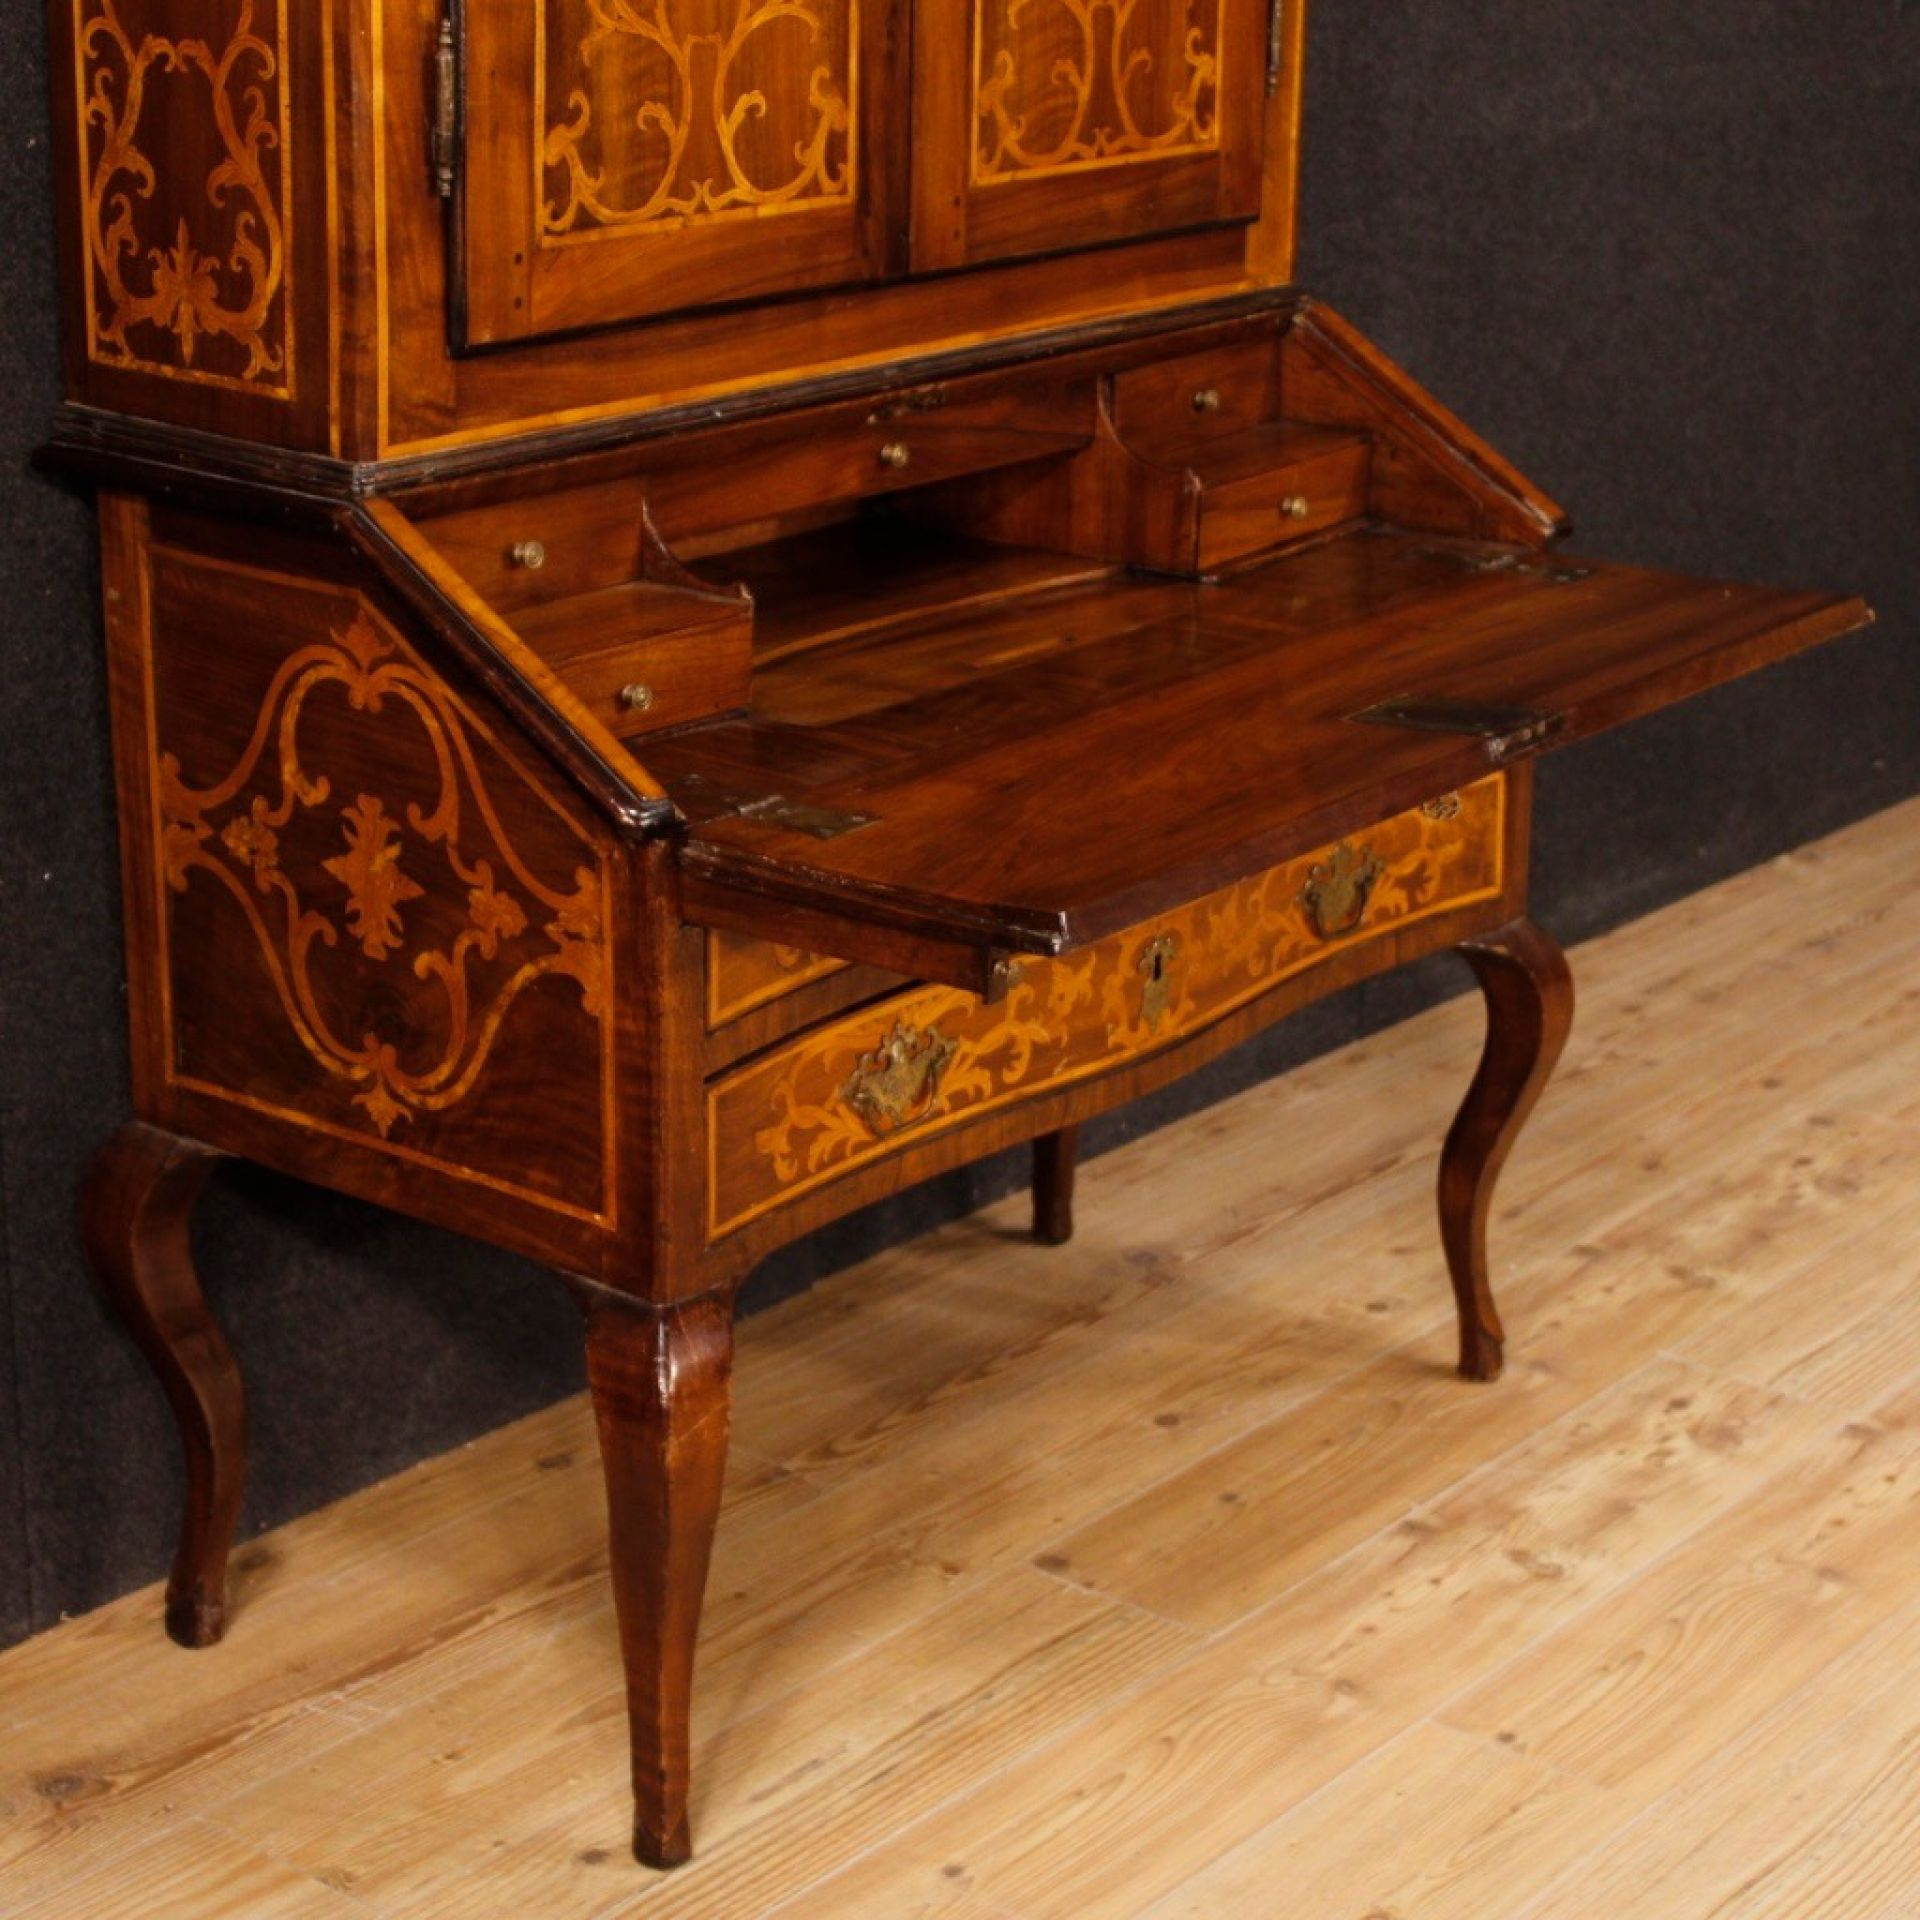 18th Century Inlaid Wood Italian Trumeau, 1780